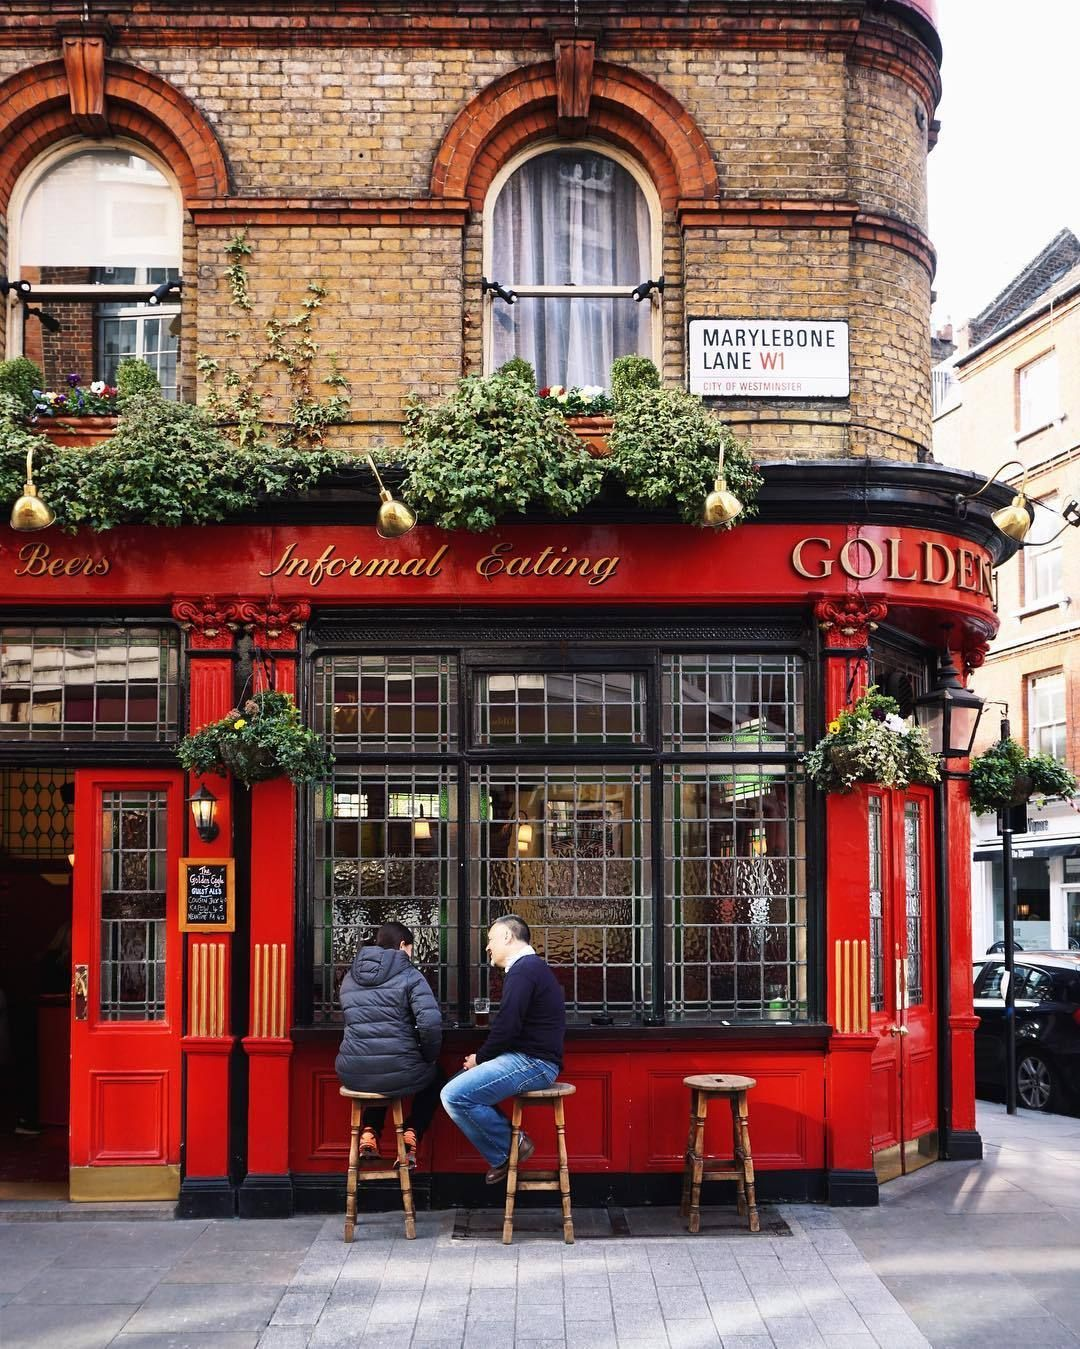 The Golden Eagle London England London Decor London Pubs Pub Decor